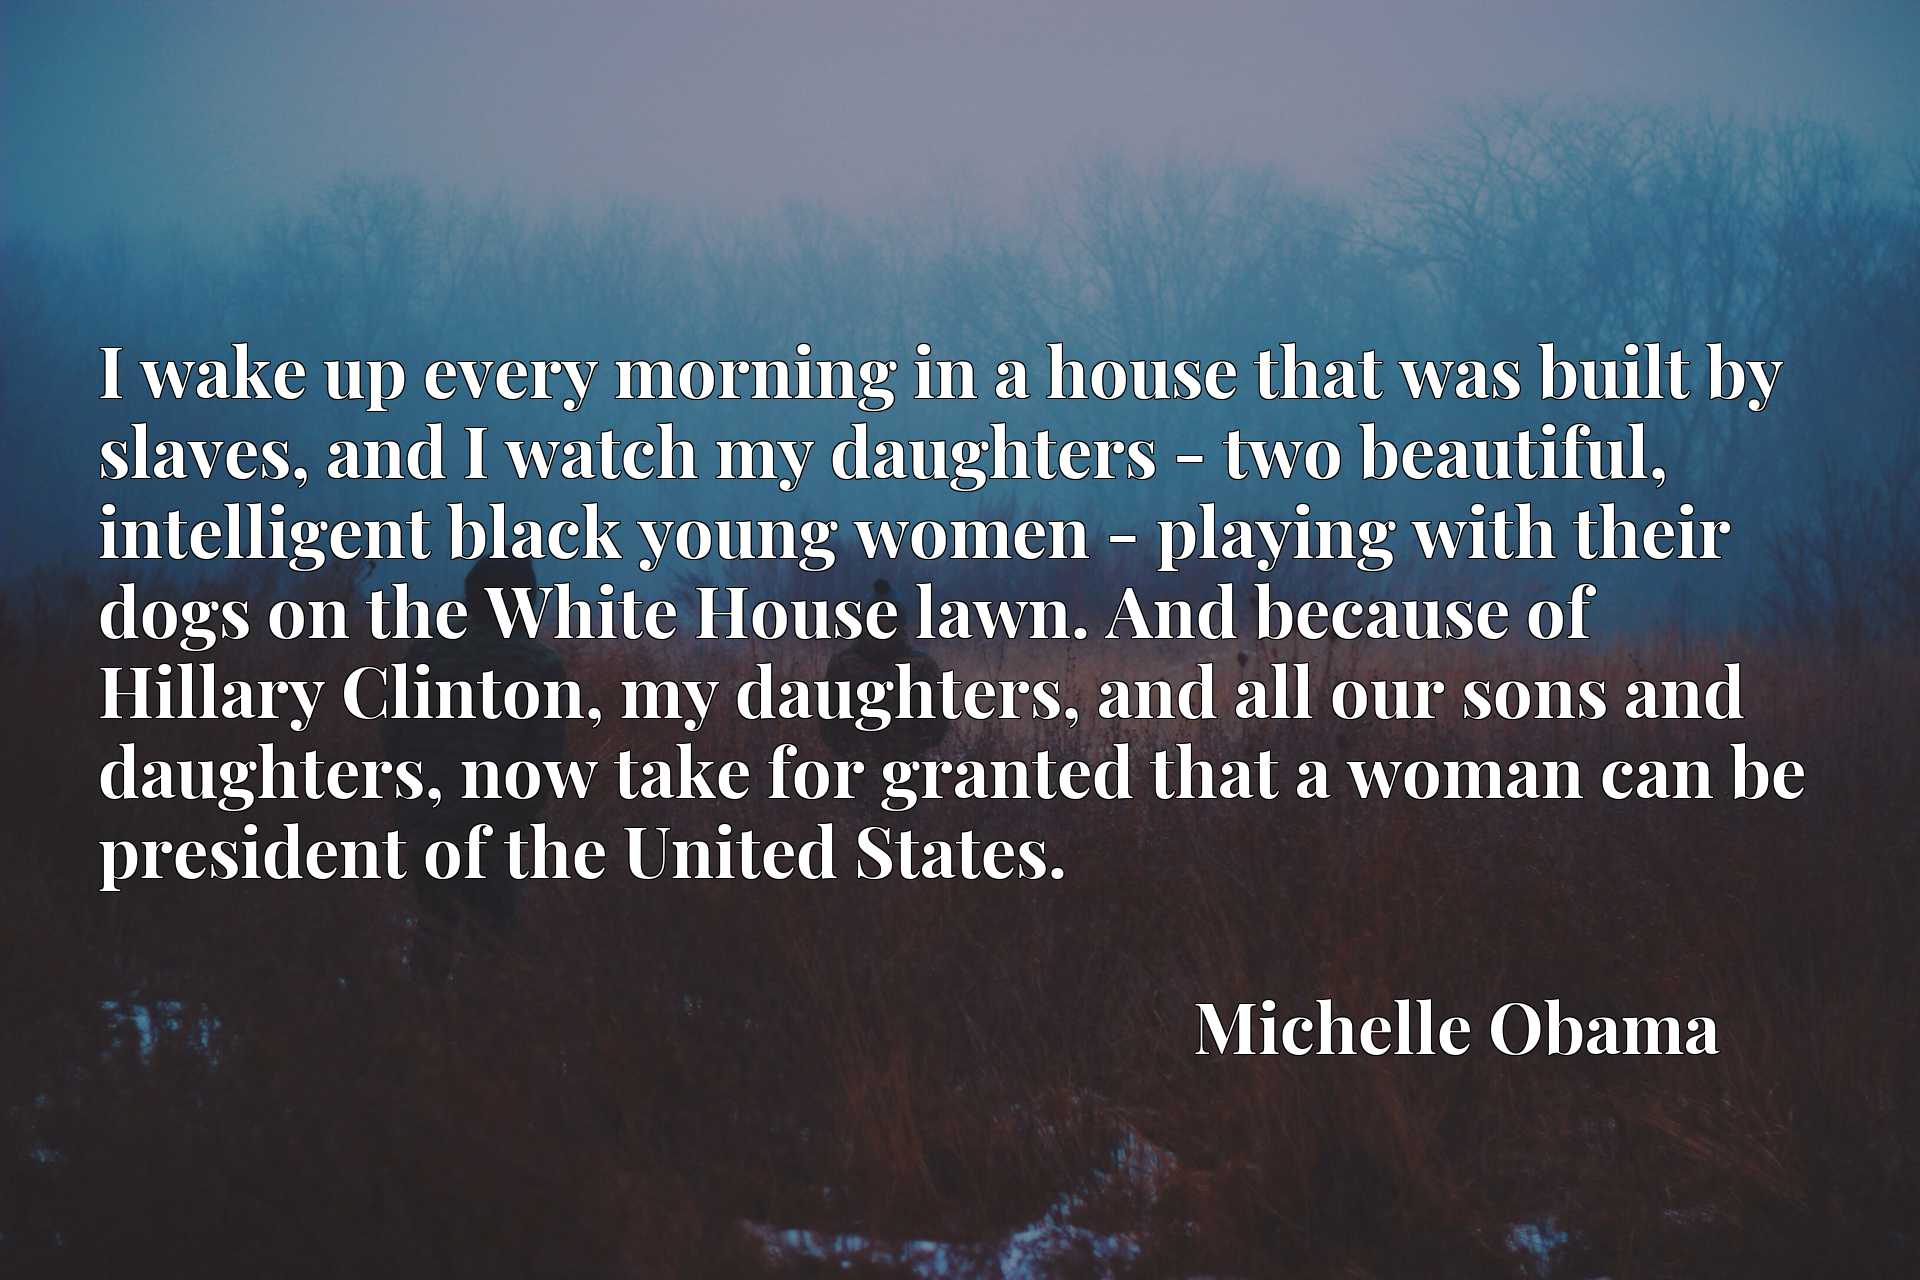 I wake up every morning in a house that was built by slaves, and I watch my daughters - two beautiful, intelligent black young women - playing with their dogs on the White House lawn. And because of Hillary Clinton, my daughters, and all our sons and daughters, now take for granted that a woman can be president of the United States.